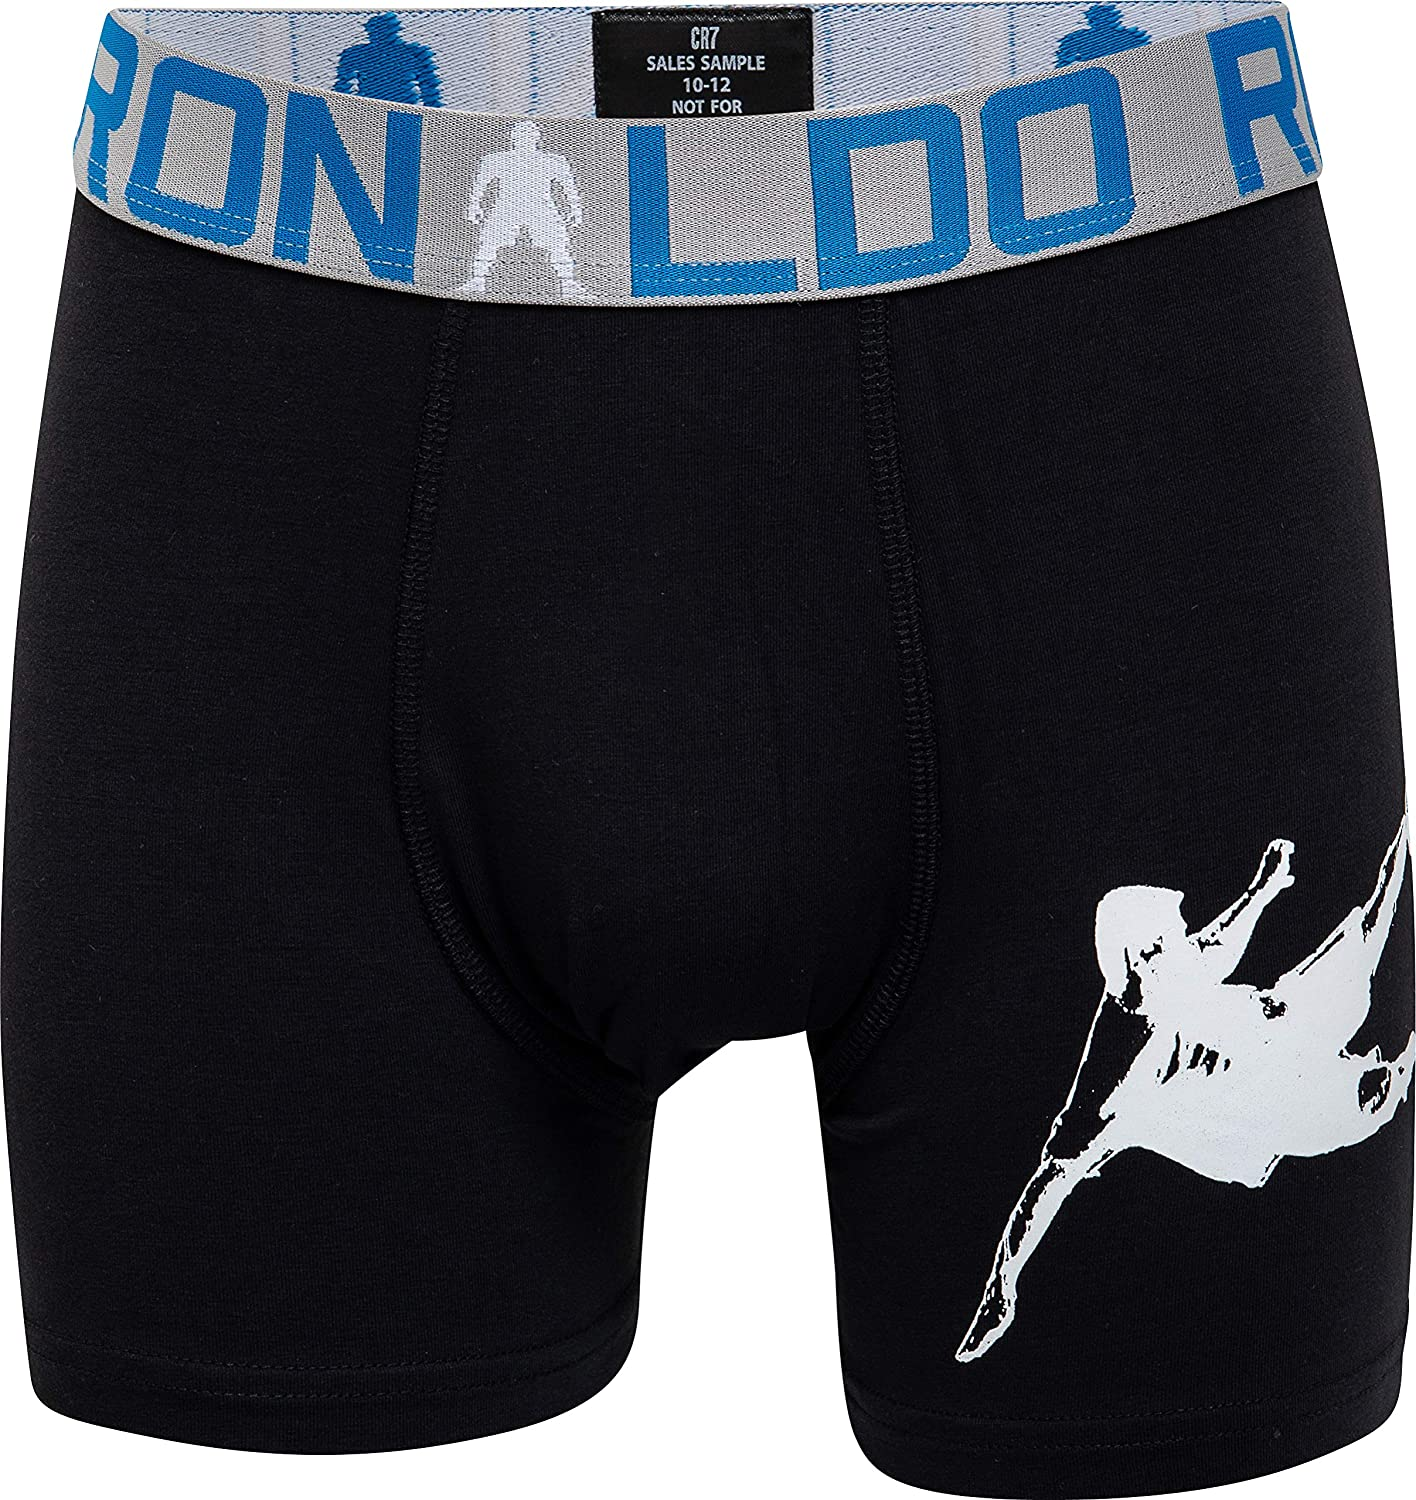 2-Pack Boys CR7 Cristiano Ronaldo Boxer Aderenti per Ragazzi CR7-8400-51-AOP all-Over-Print